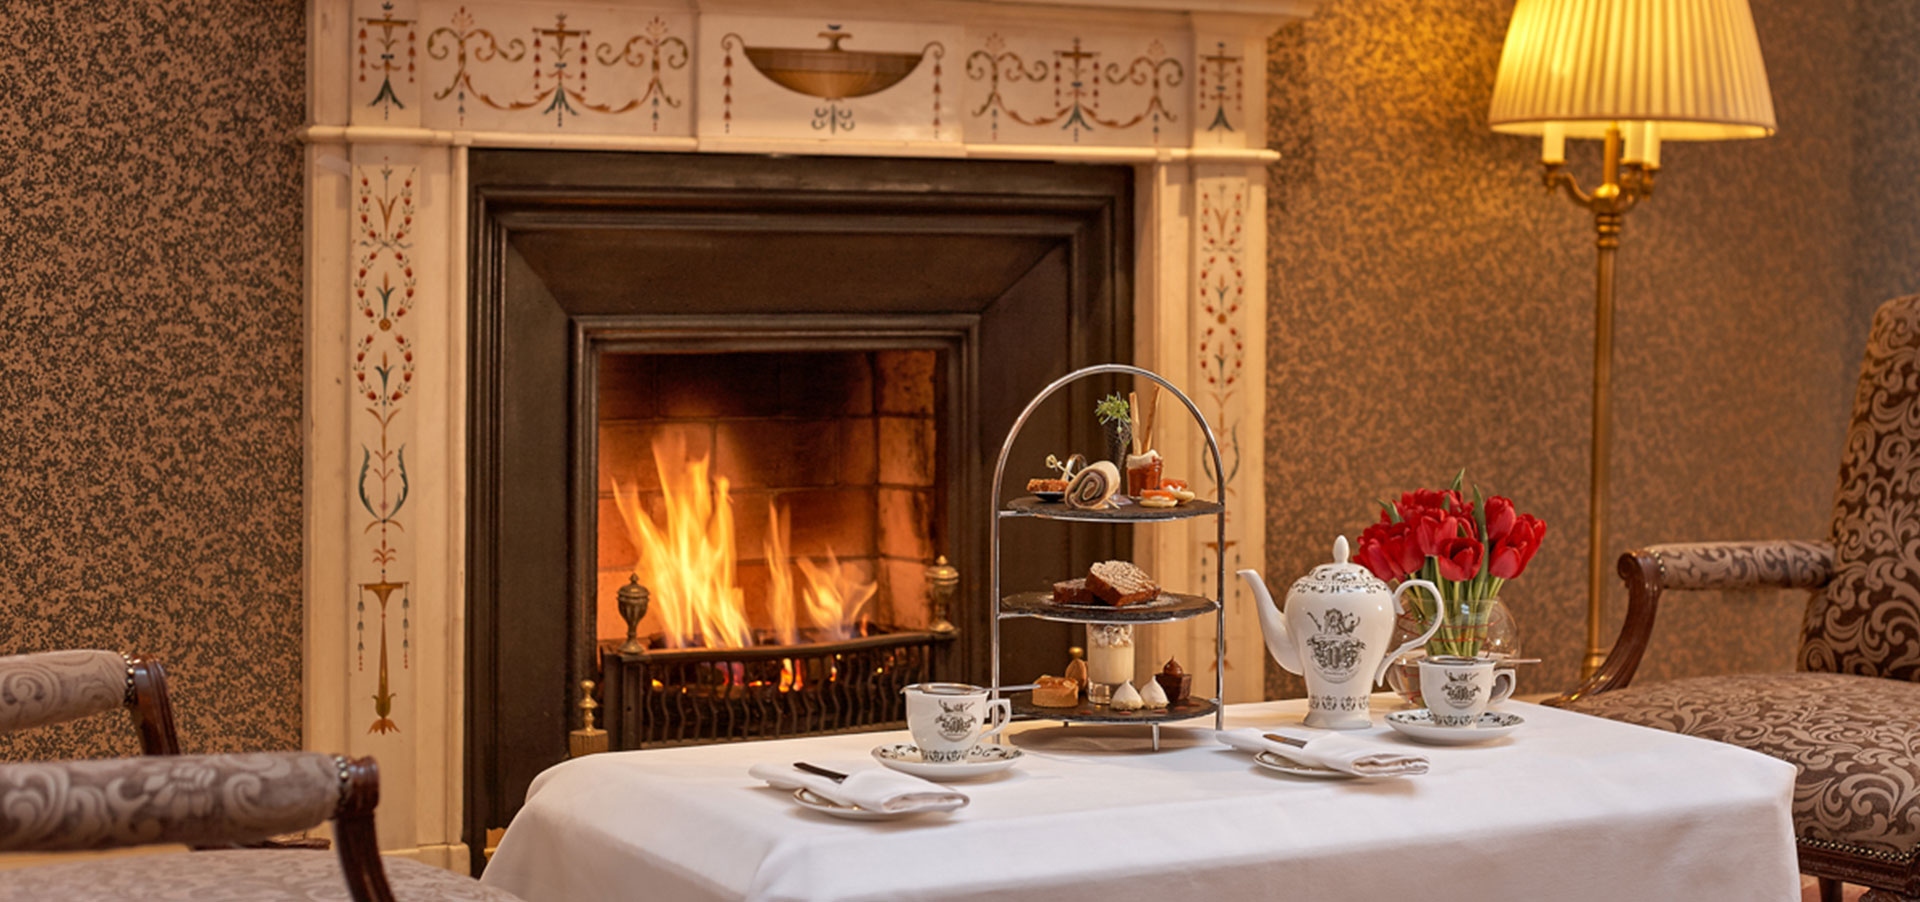 Afternoon Tea in the Atrium Lounge